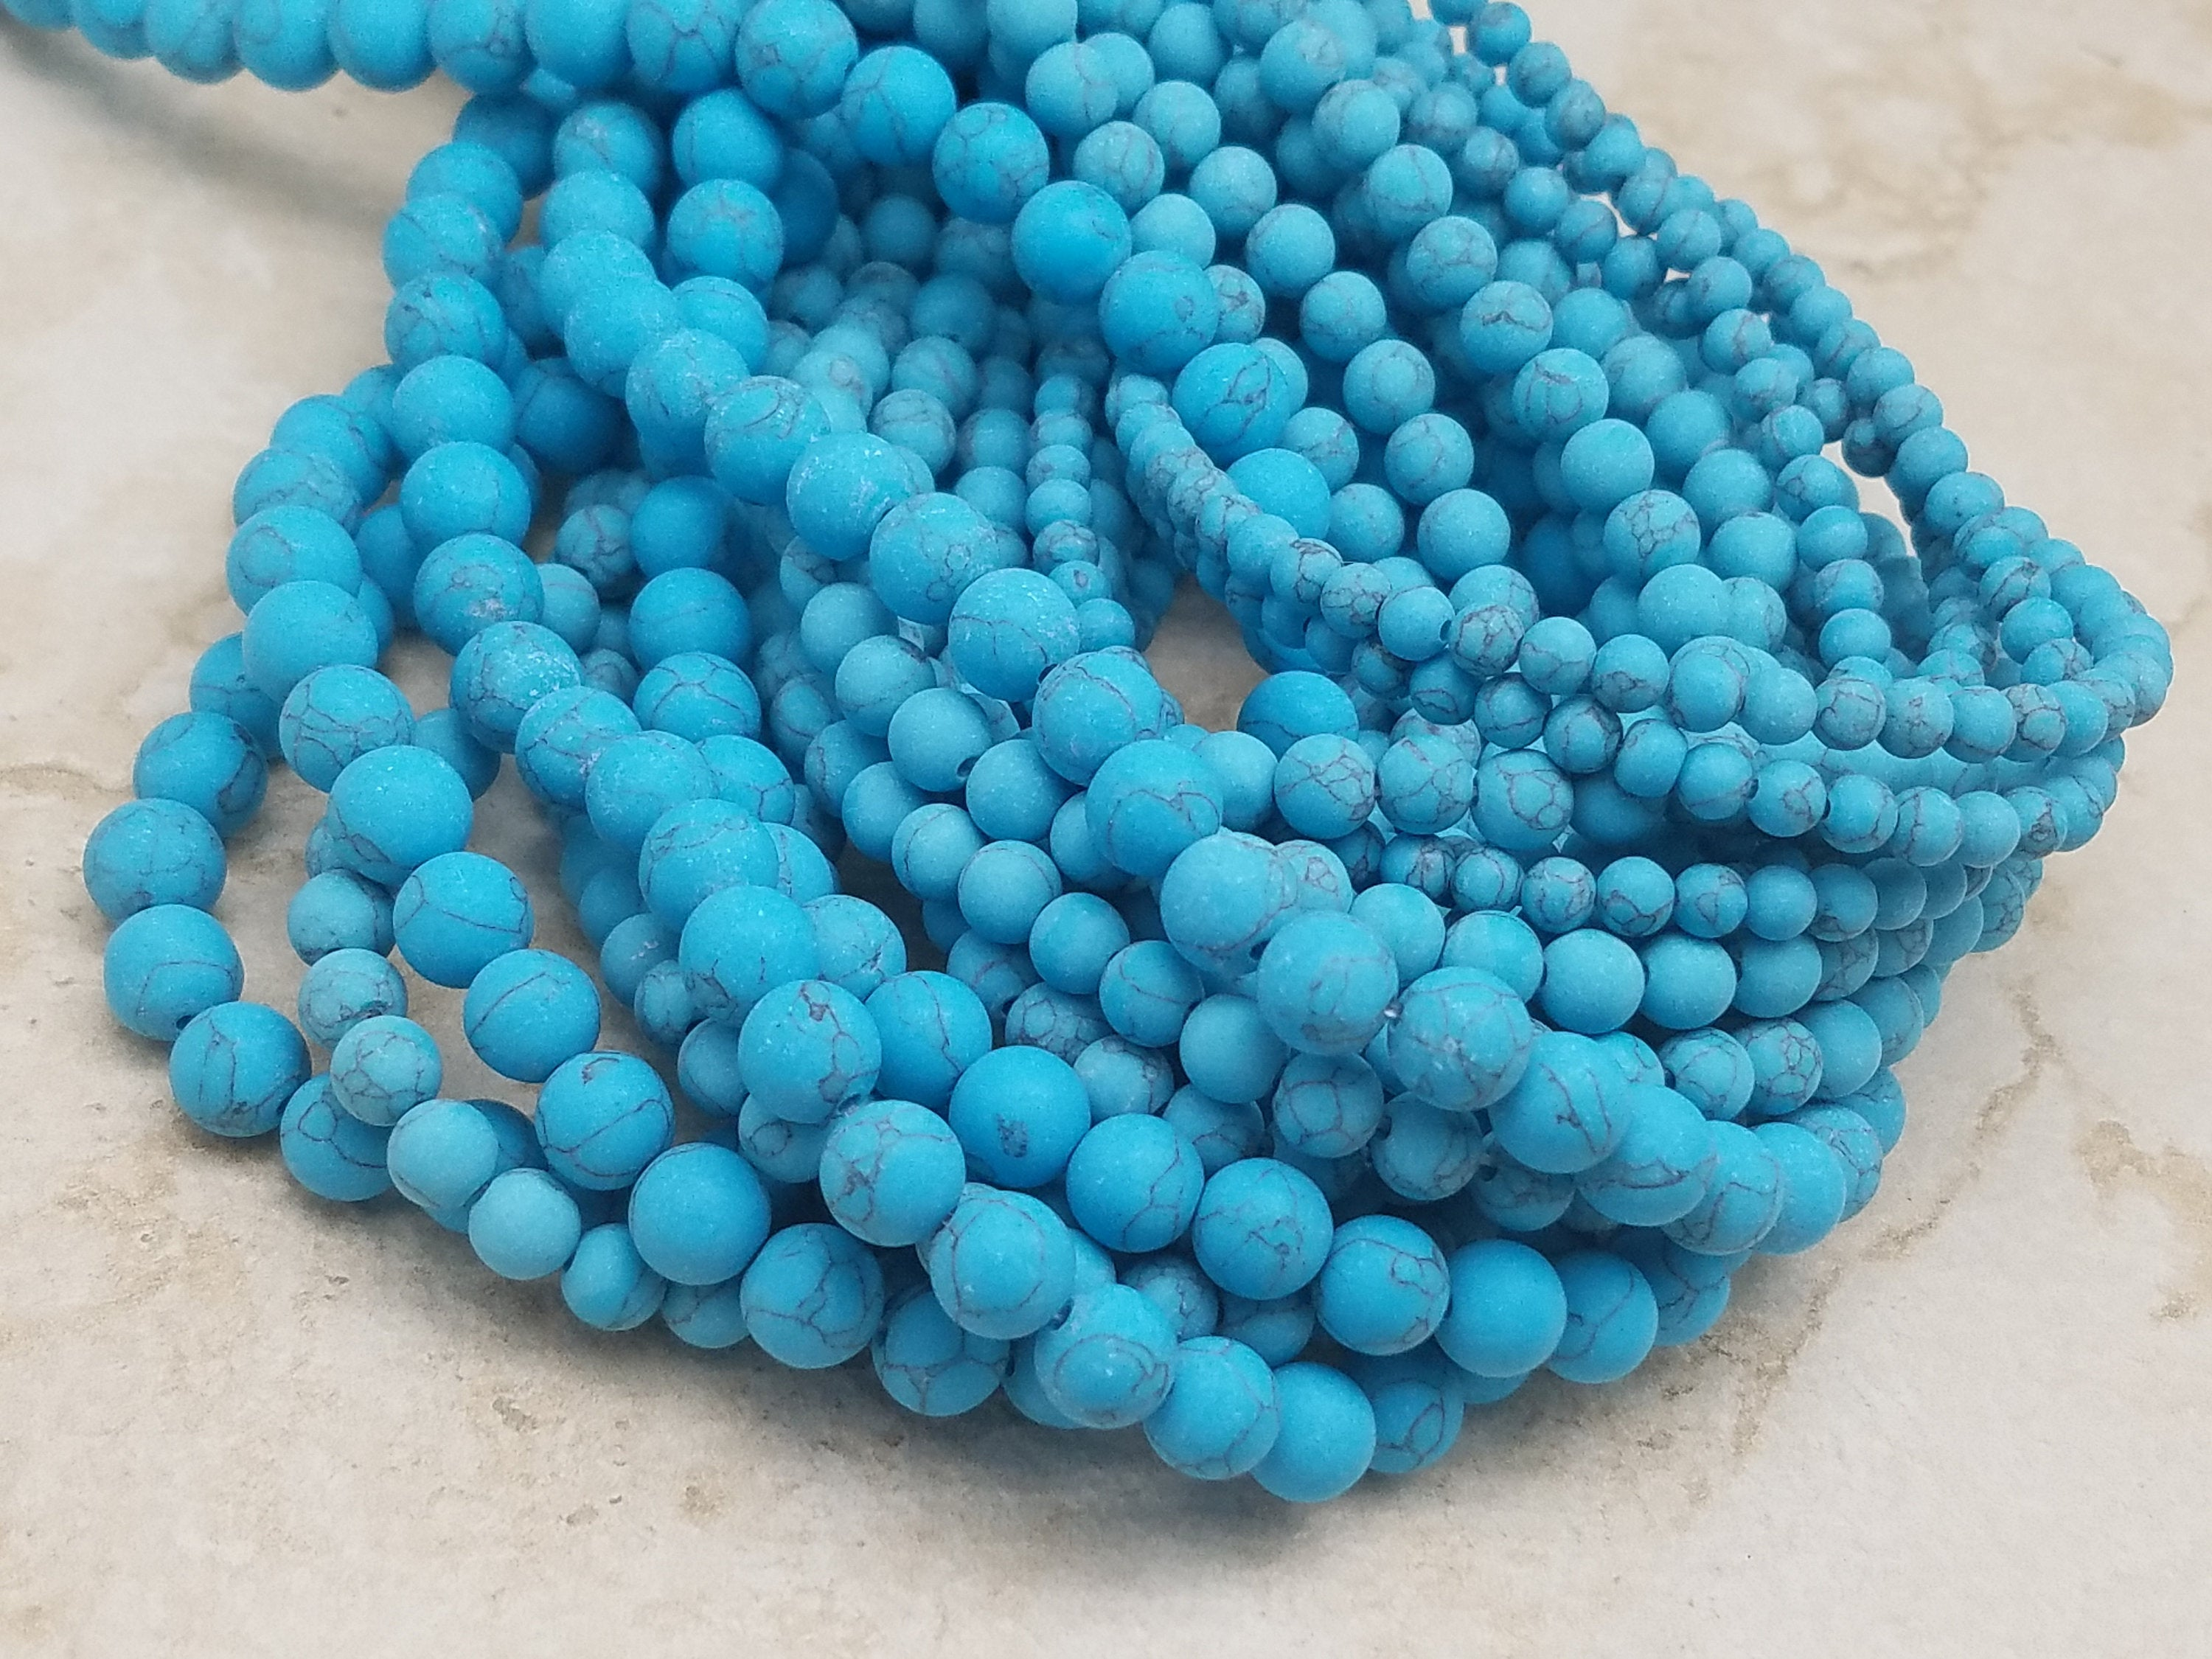 4mm or 6mm or 8mm Blue Turquoise Matte Round Beads, 15 inch